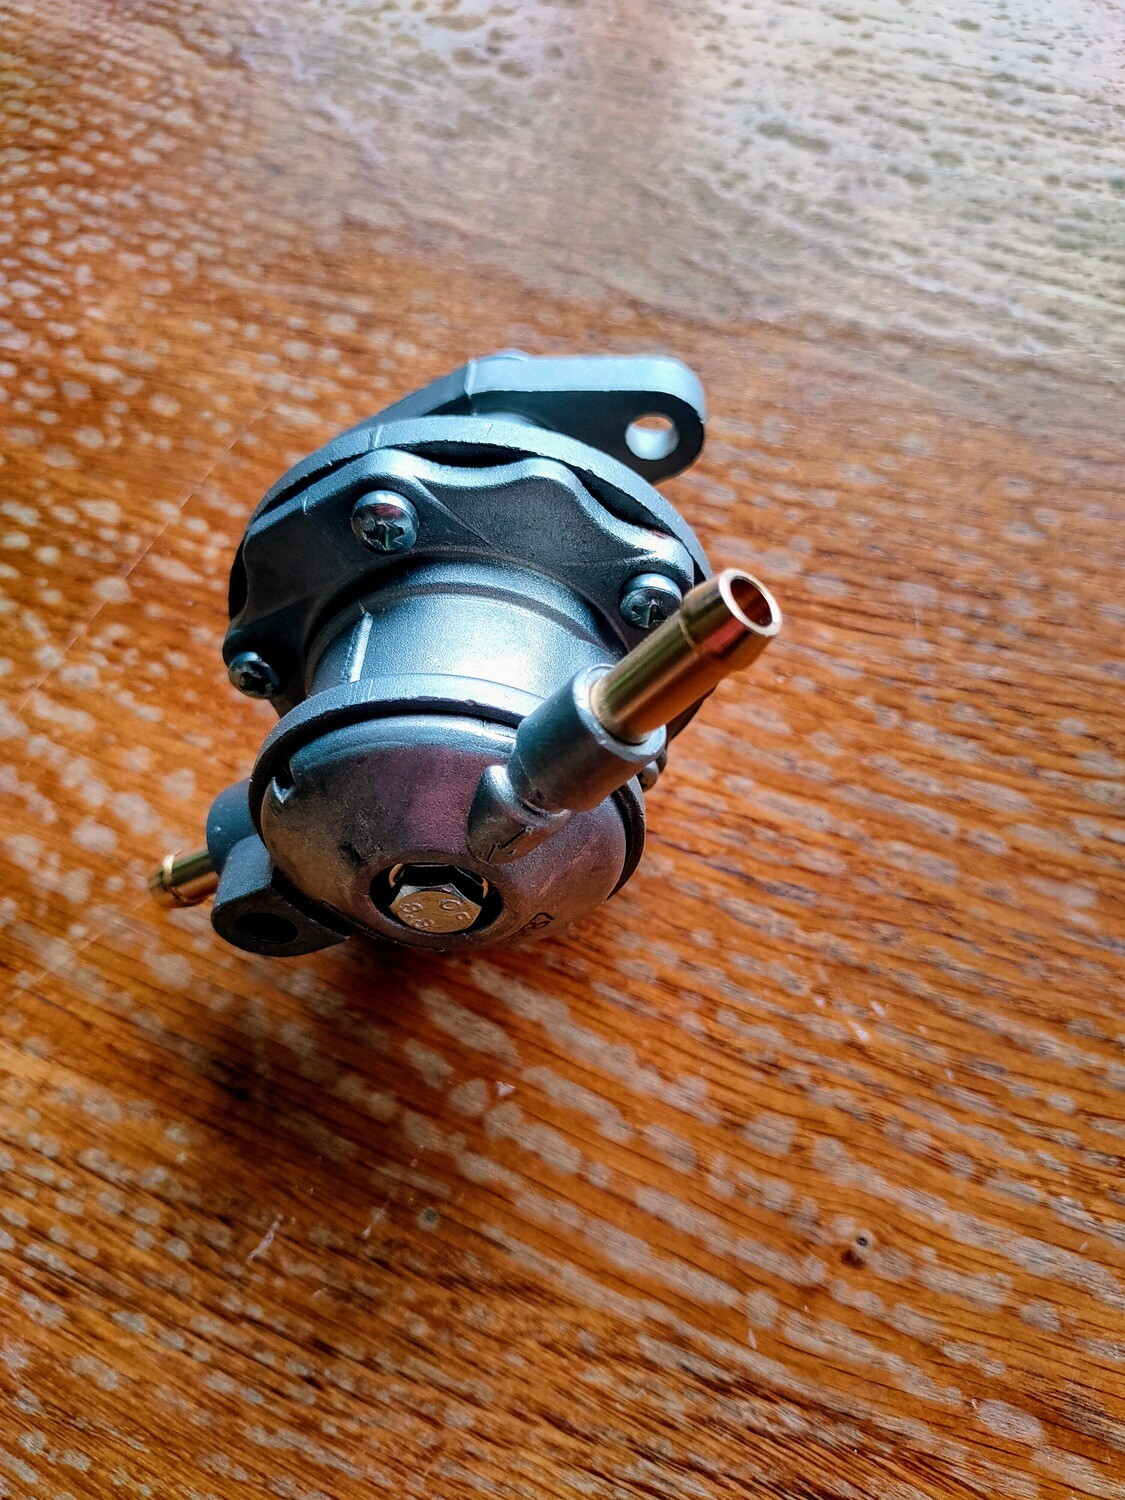 M530 Fuel Pump with 8mm Connector